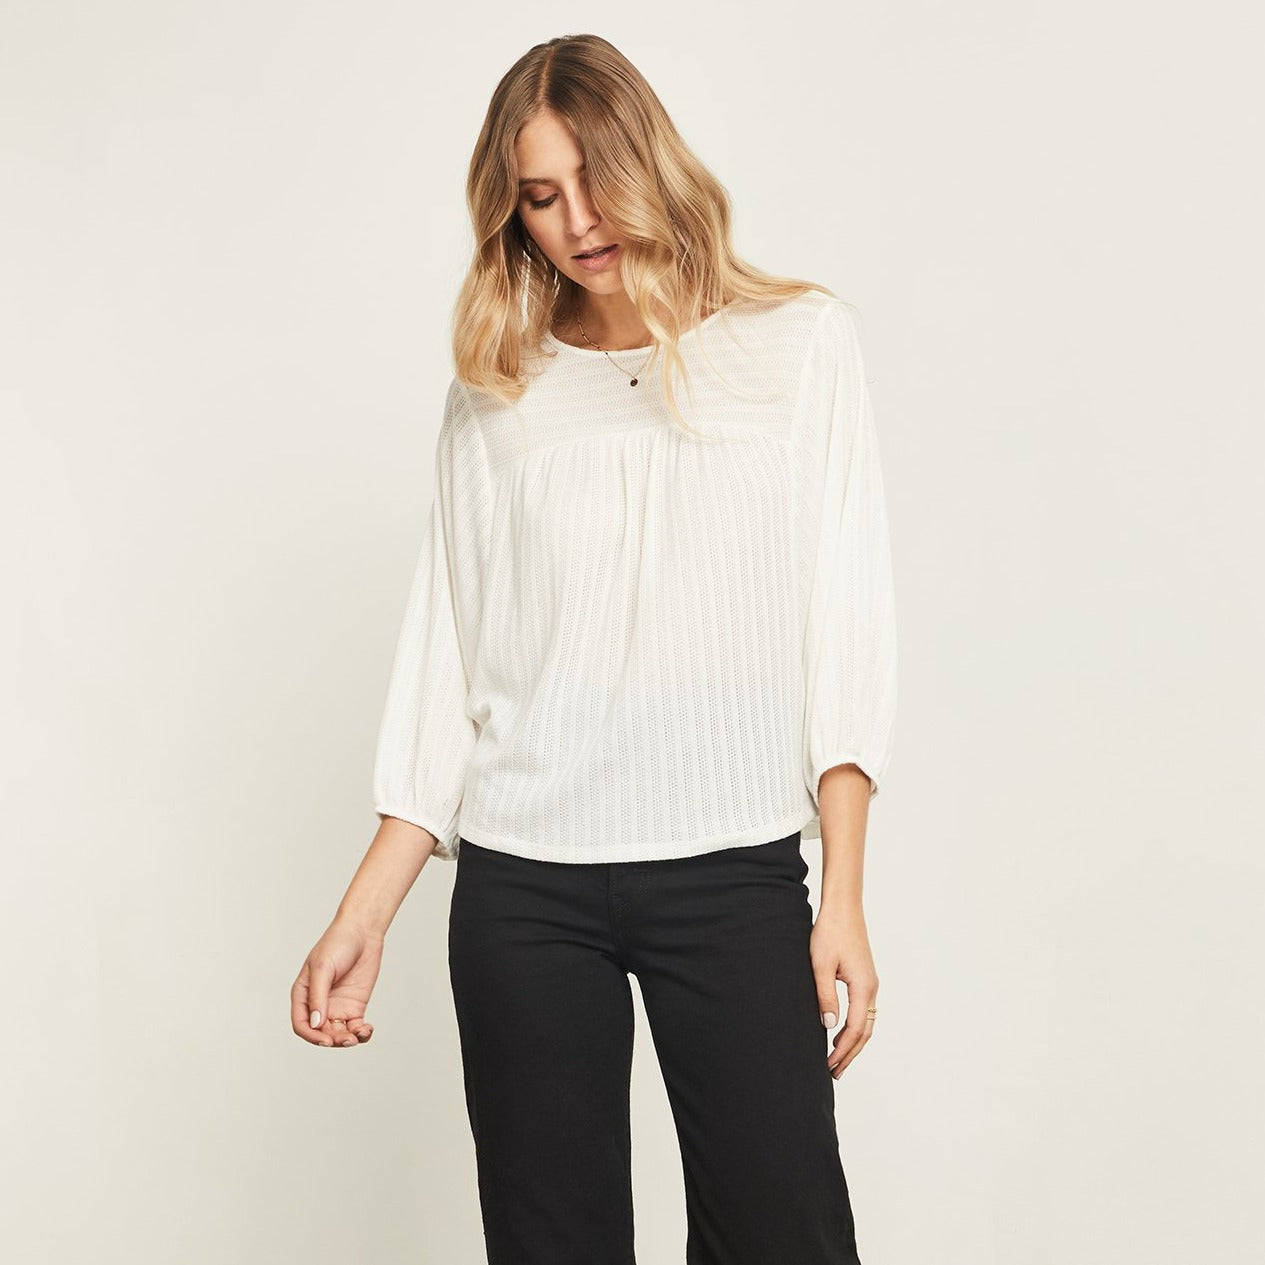 Gentle Fawn // Paige Top